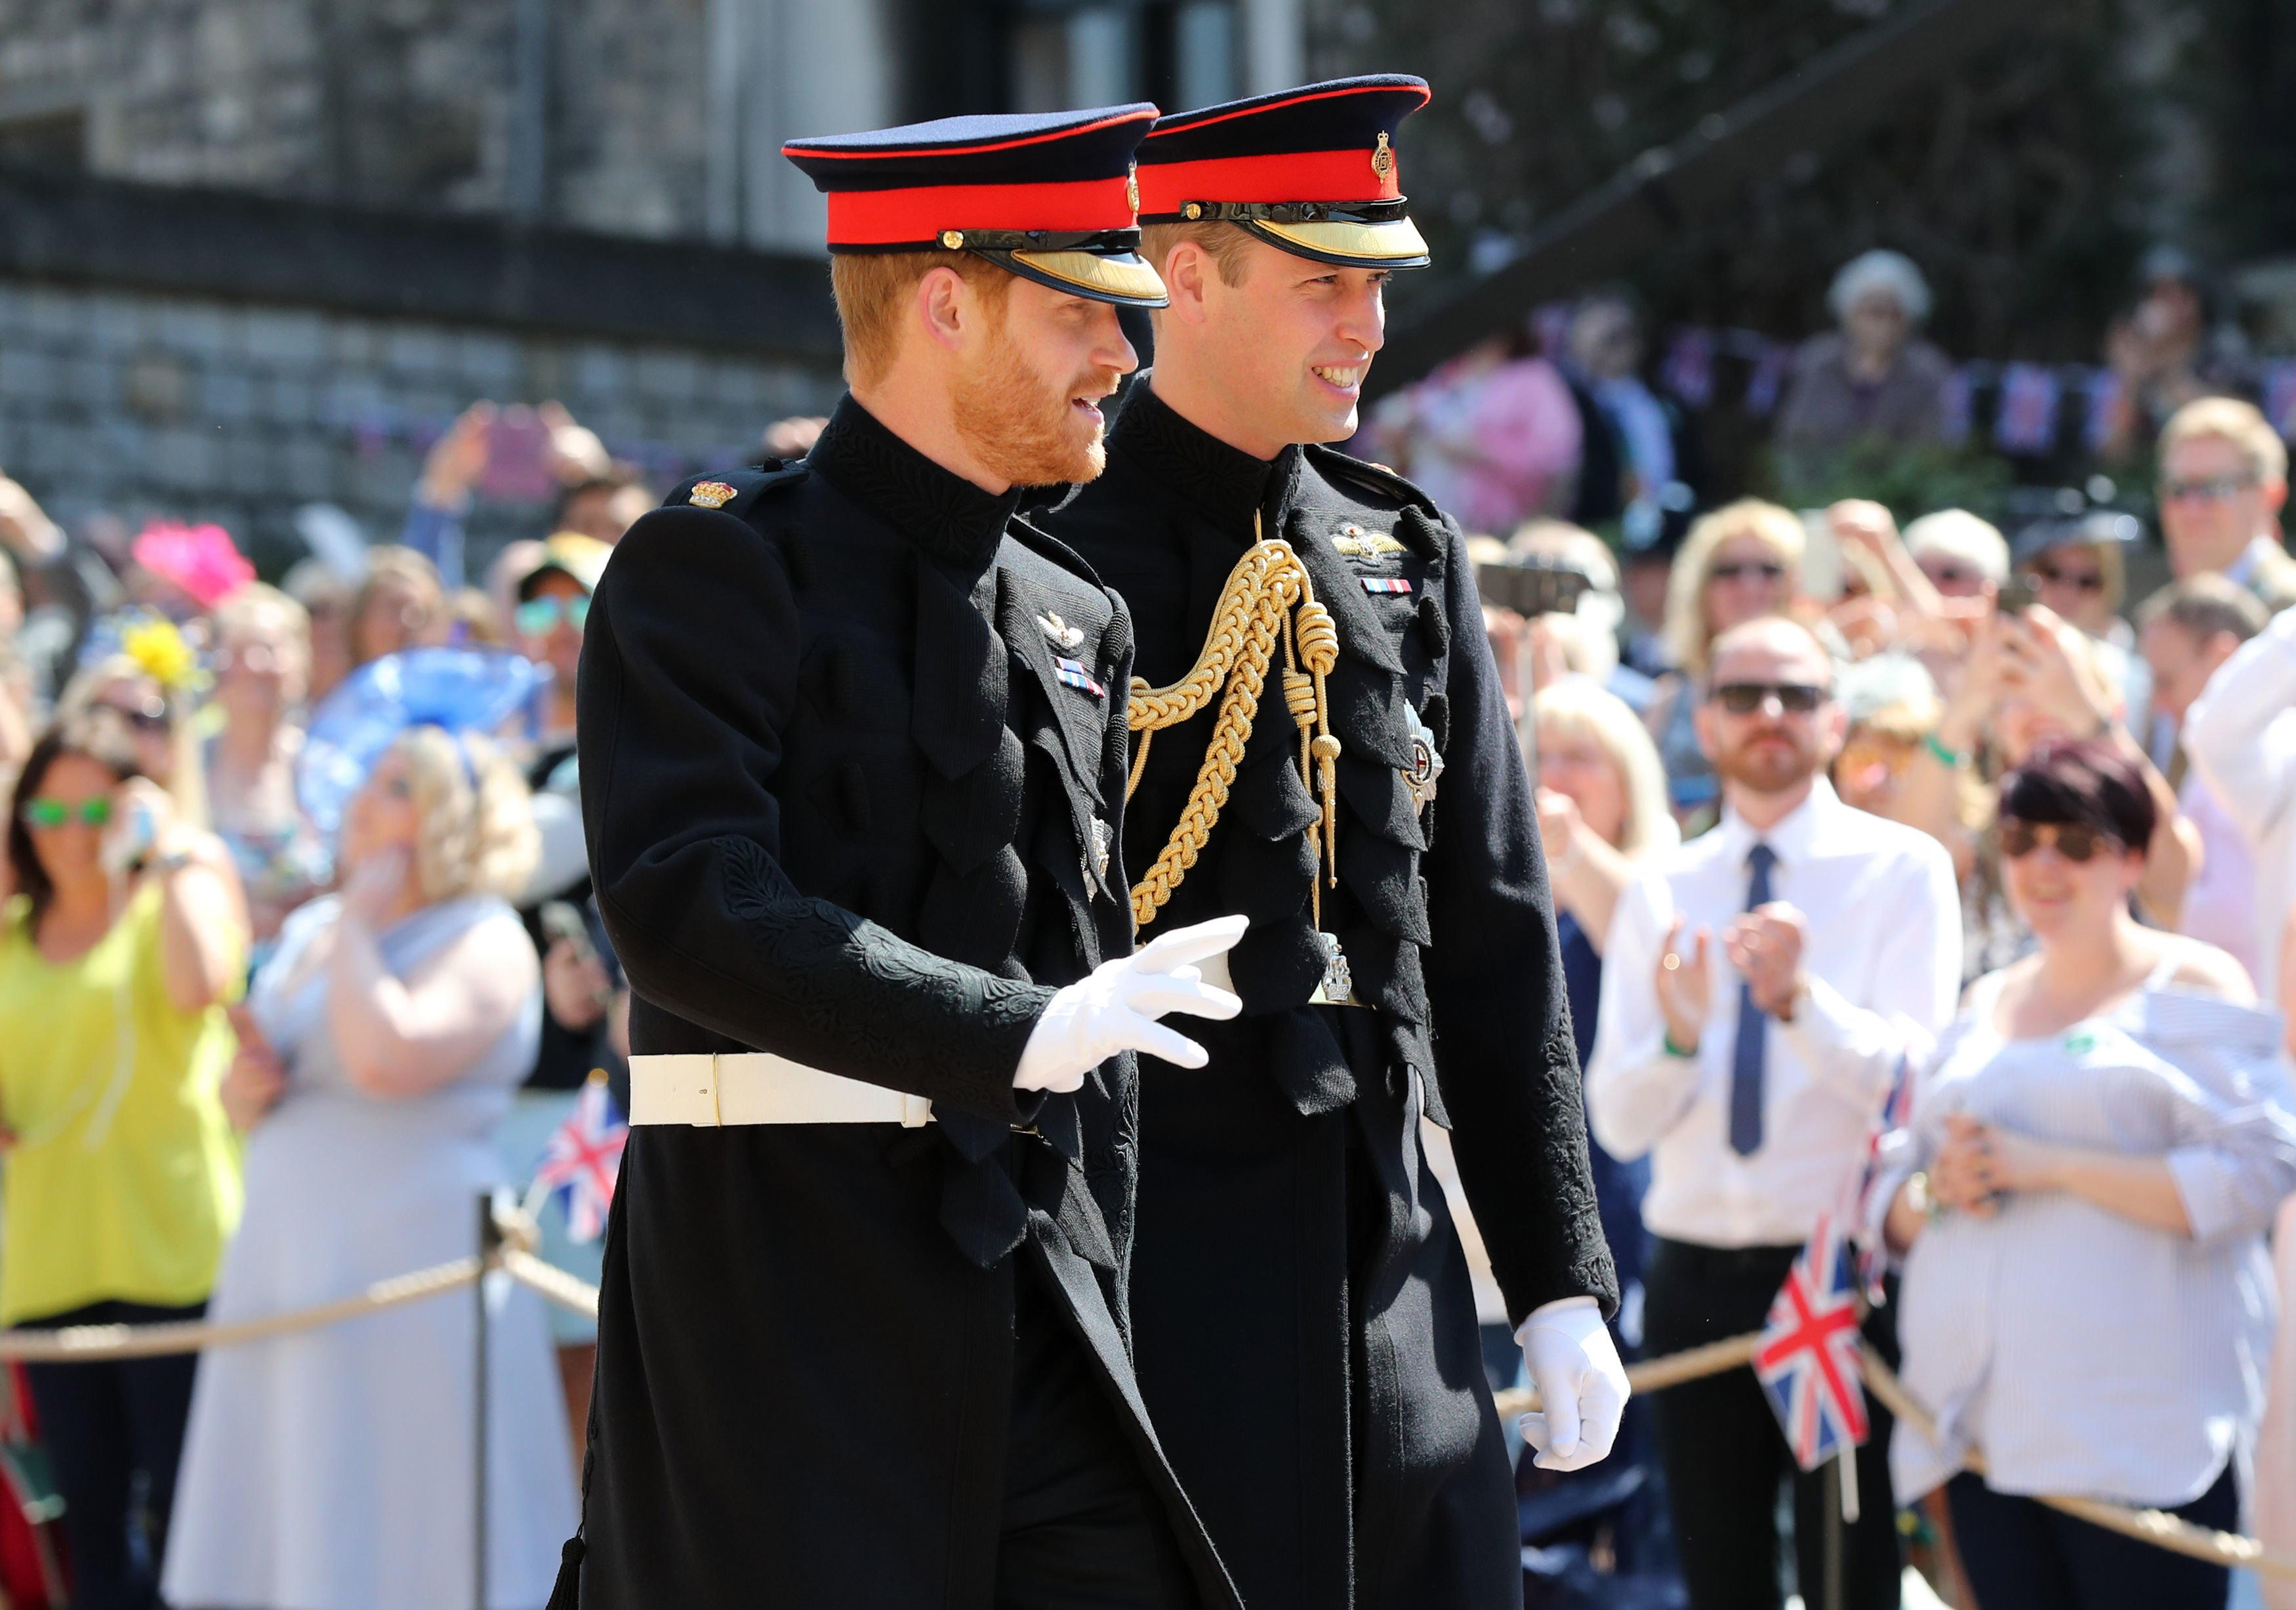 Image Credits: Getty Images / Gareth Fuller - WPA Pool   Prince Harry walks with his best man, Prince William, Duke of Cambridge as they arrive at St George's Chapel at Windsor Castle before the wedding of Prince Harry to Meghan Markle on May 19, 2018 in Windsor, England.